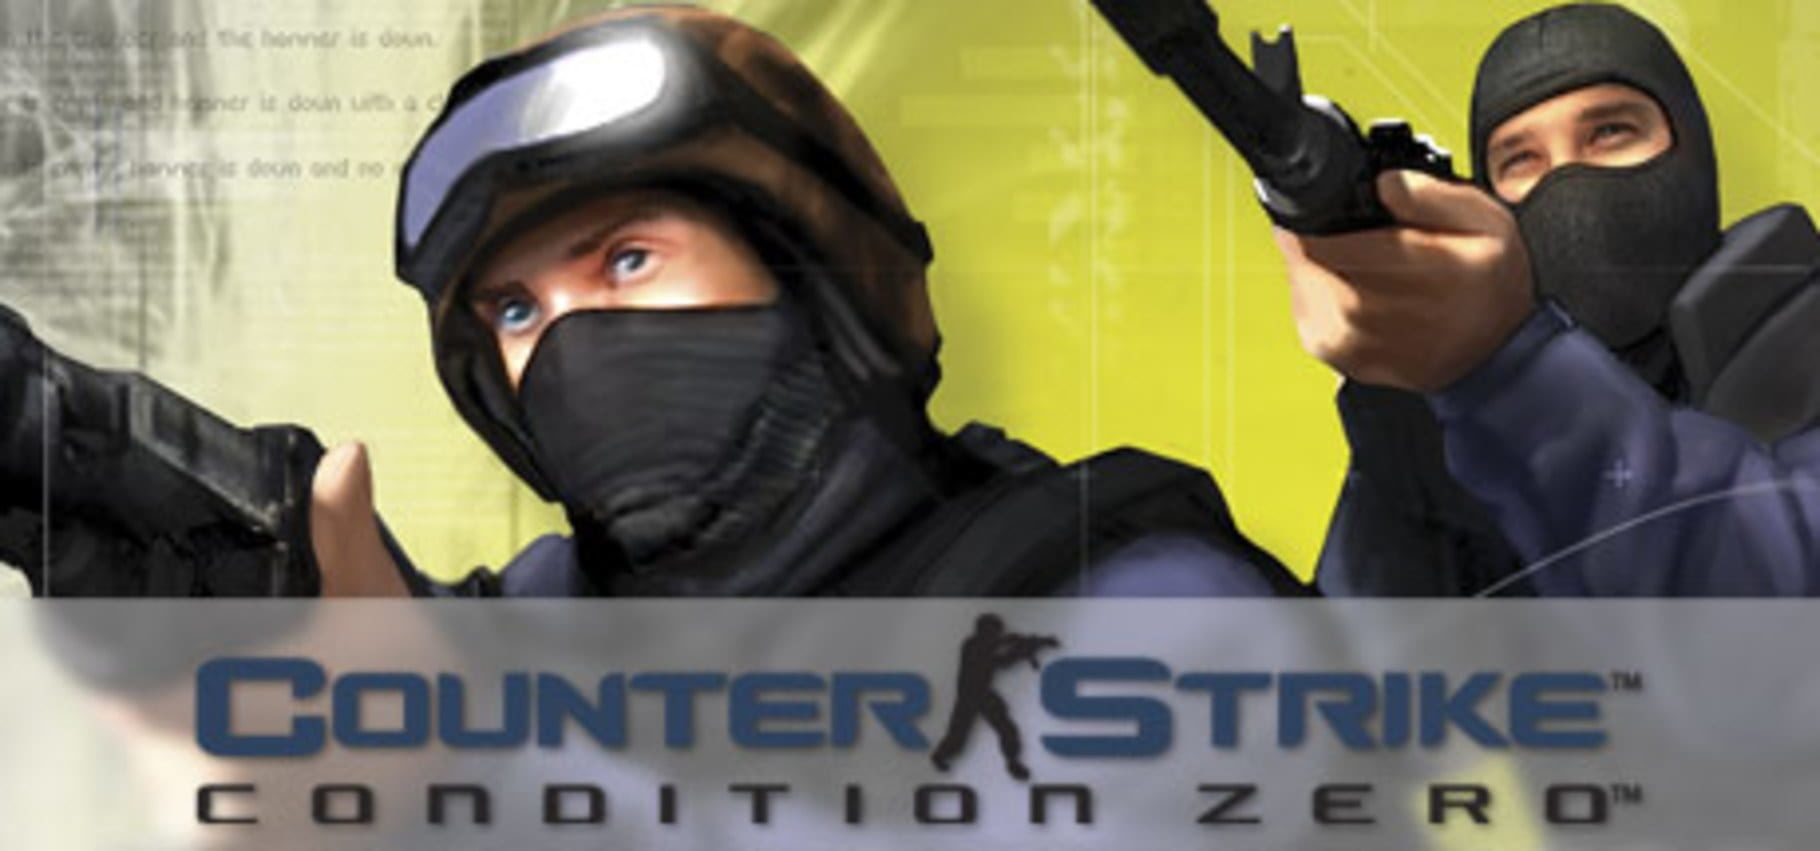 buy Counter-Strike: Condition Zero Deleted Scenes cd key for all platform